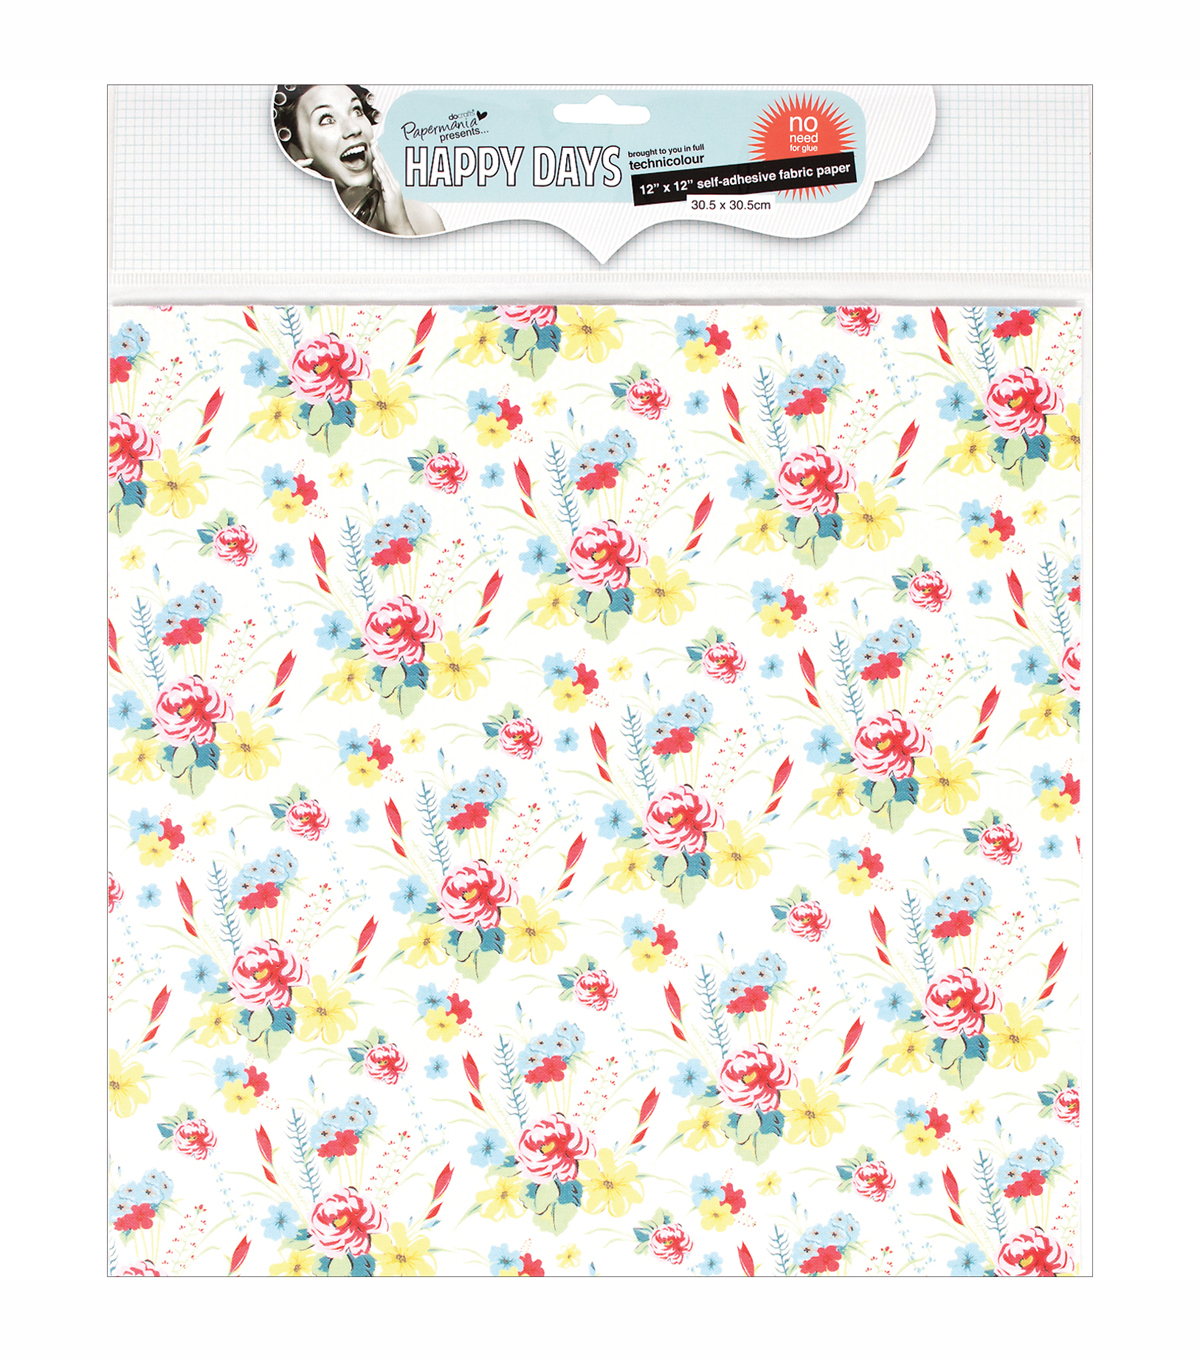 Docrafts Papermania Happy Days Self-Adhesive Fabric Paper